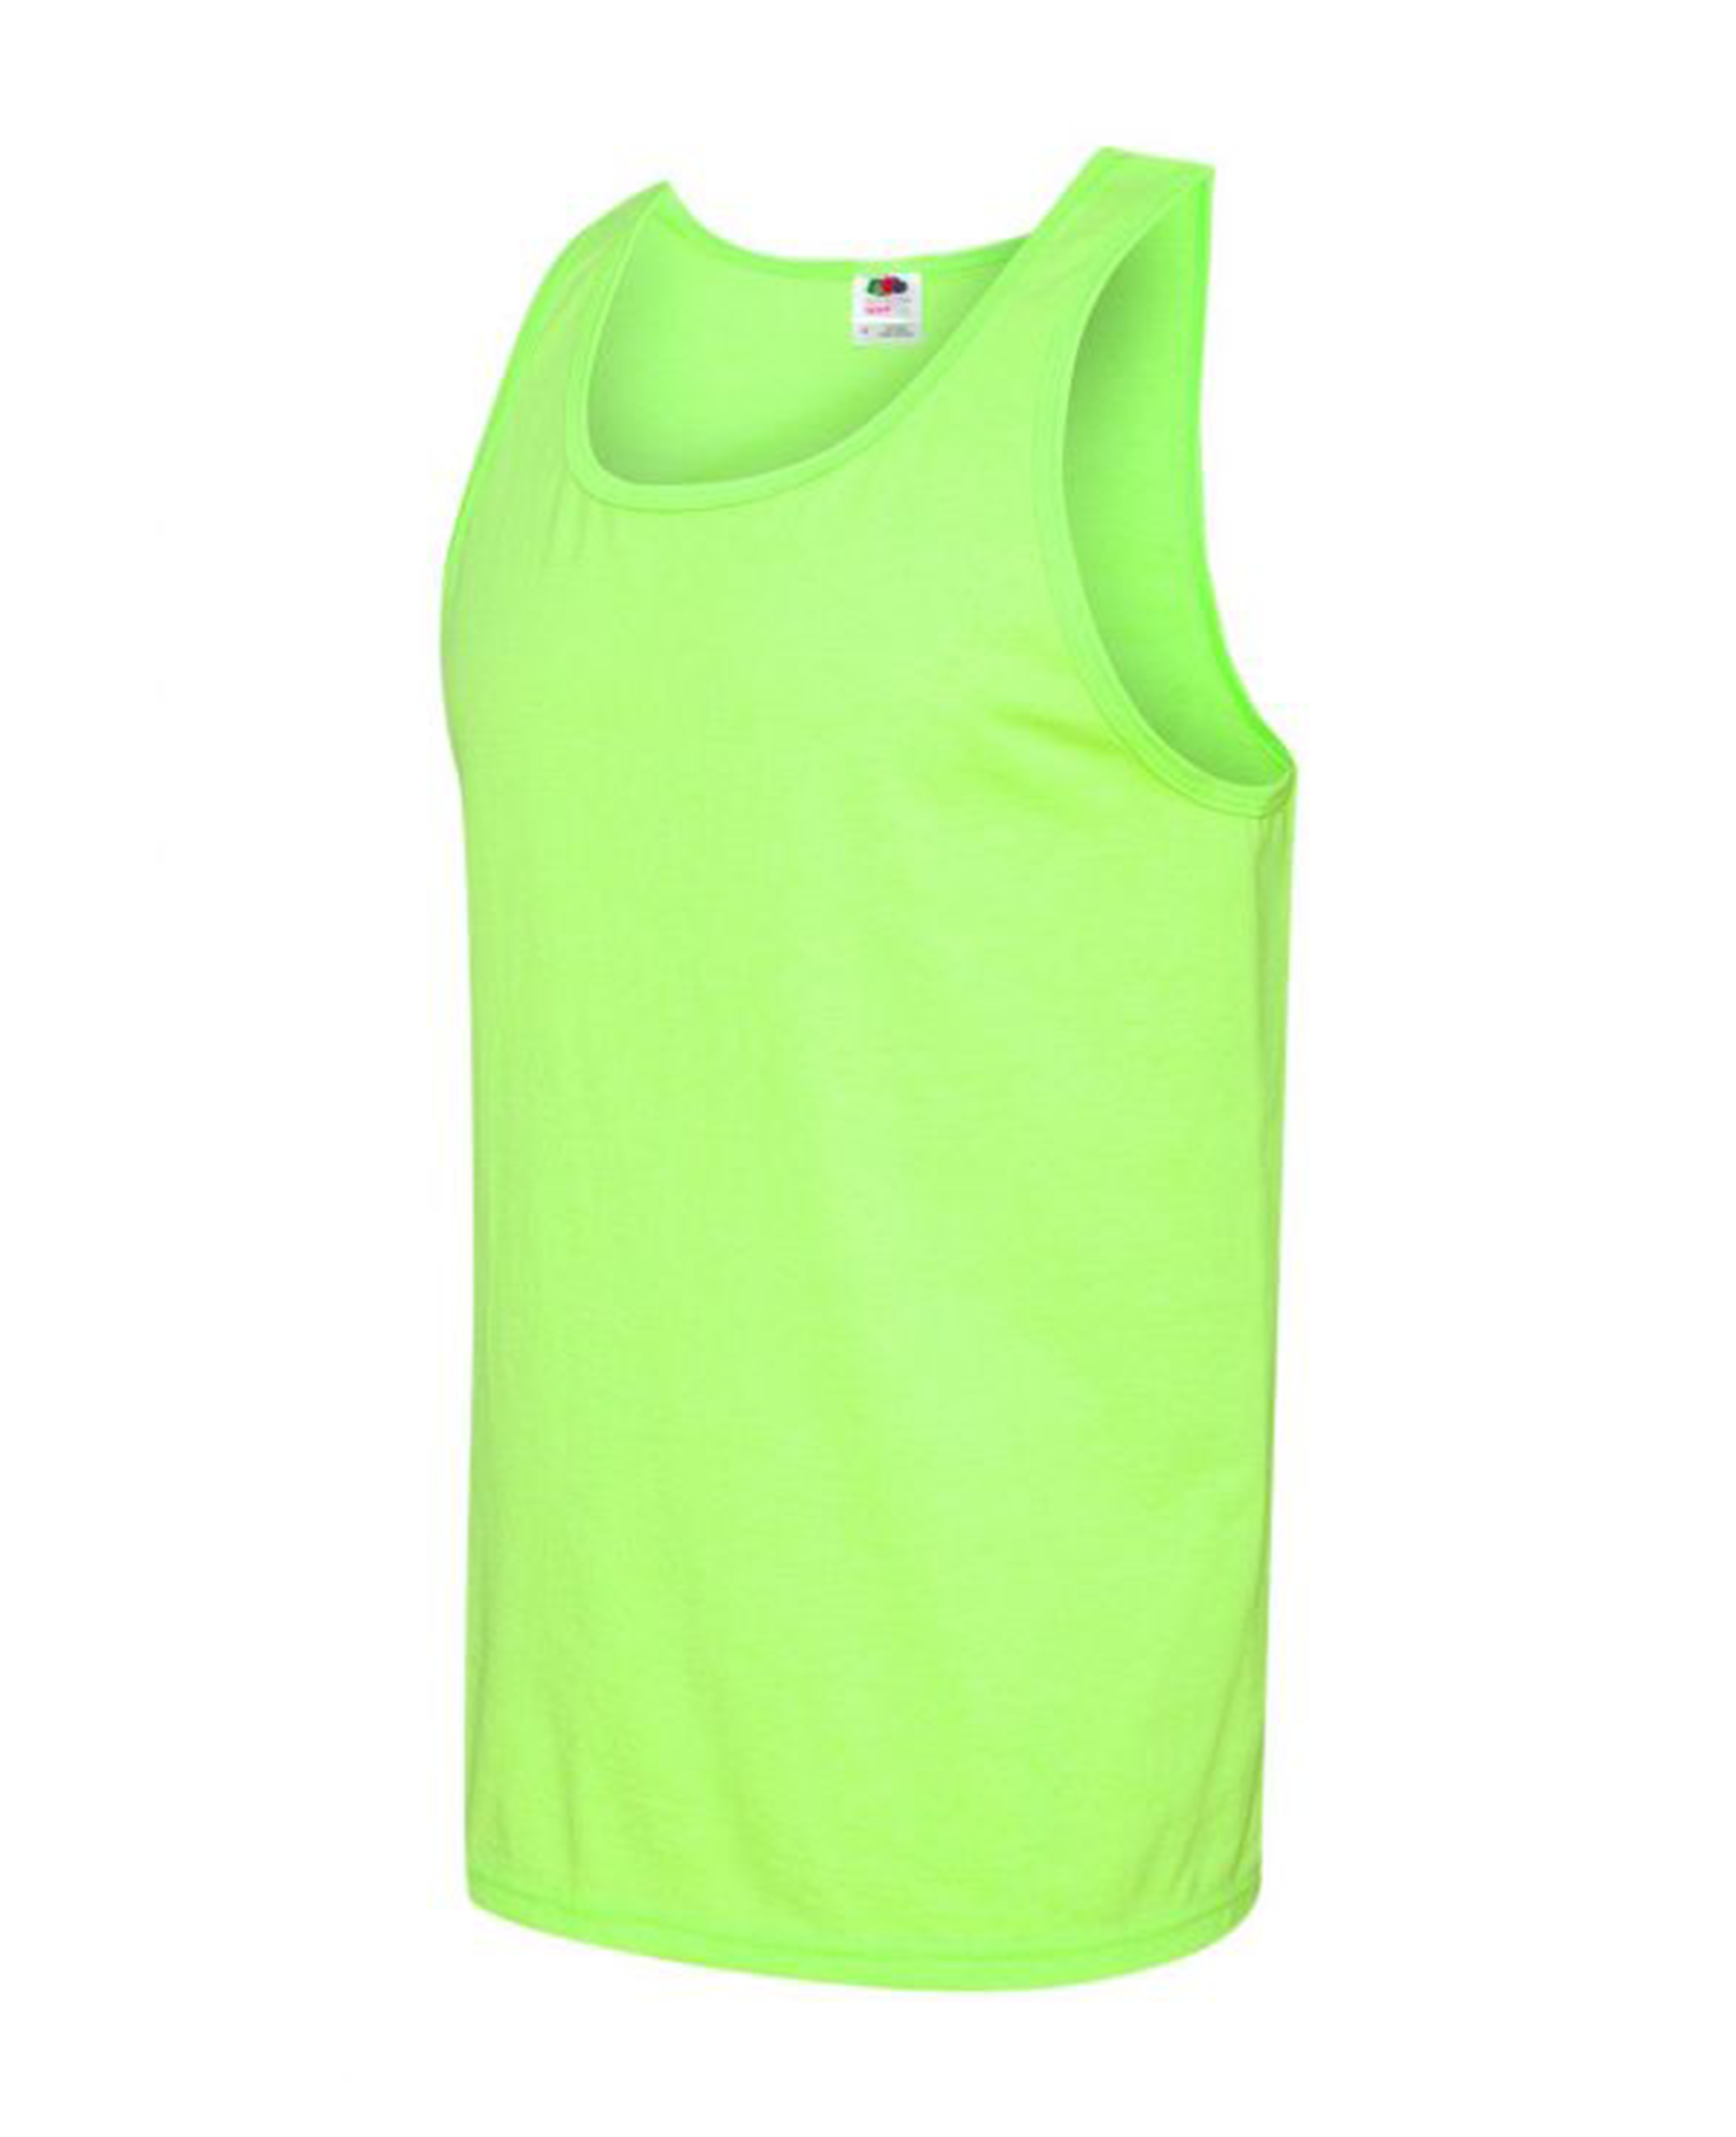 3 pack Men's Tank - Tanks - Fruit of the loom - BRANMA